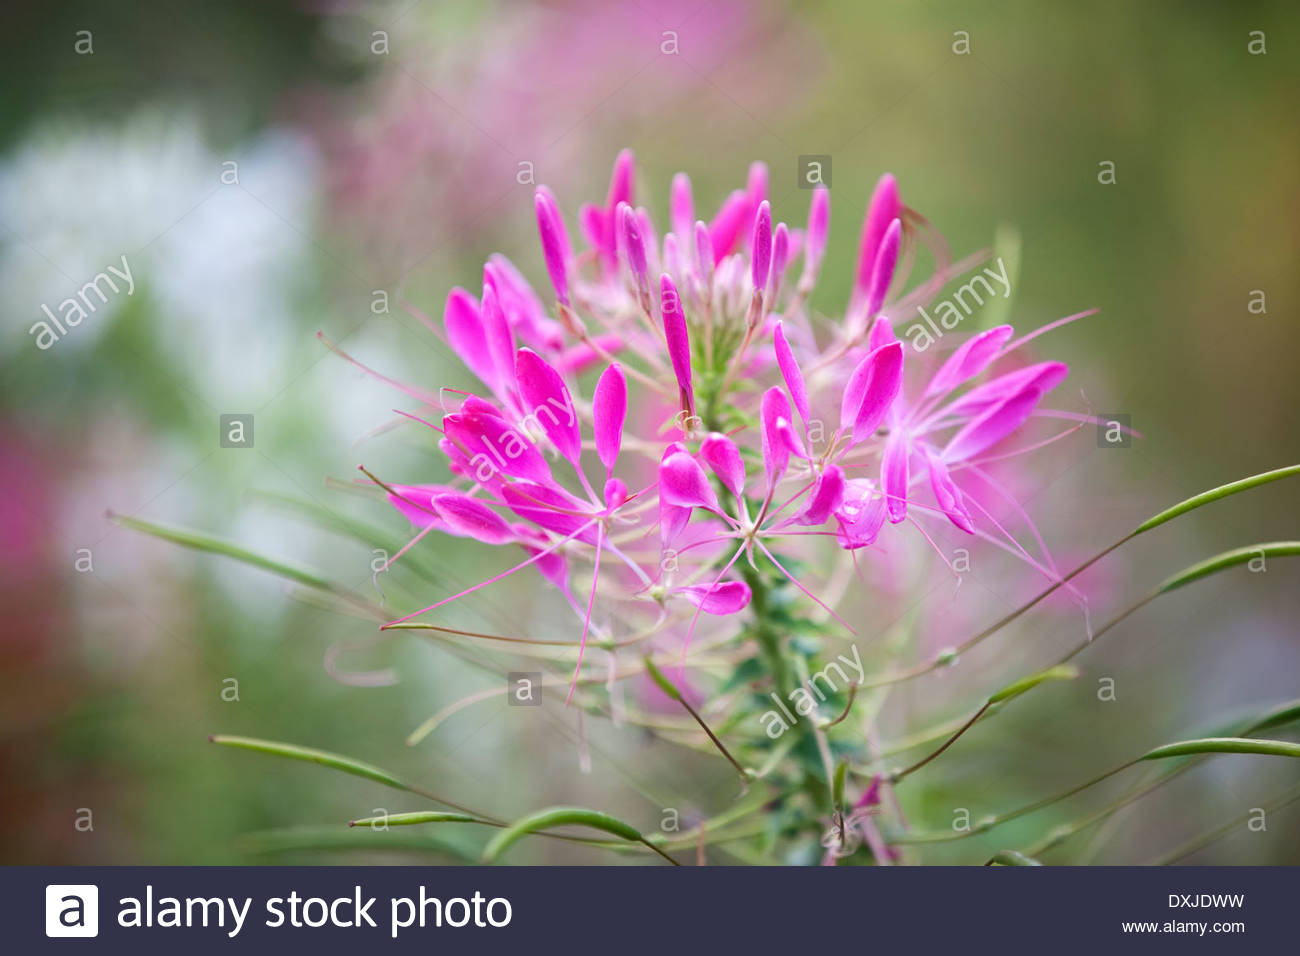 Cleome hassleriana Spider Flower Stock Royalty Free